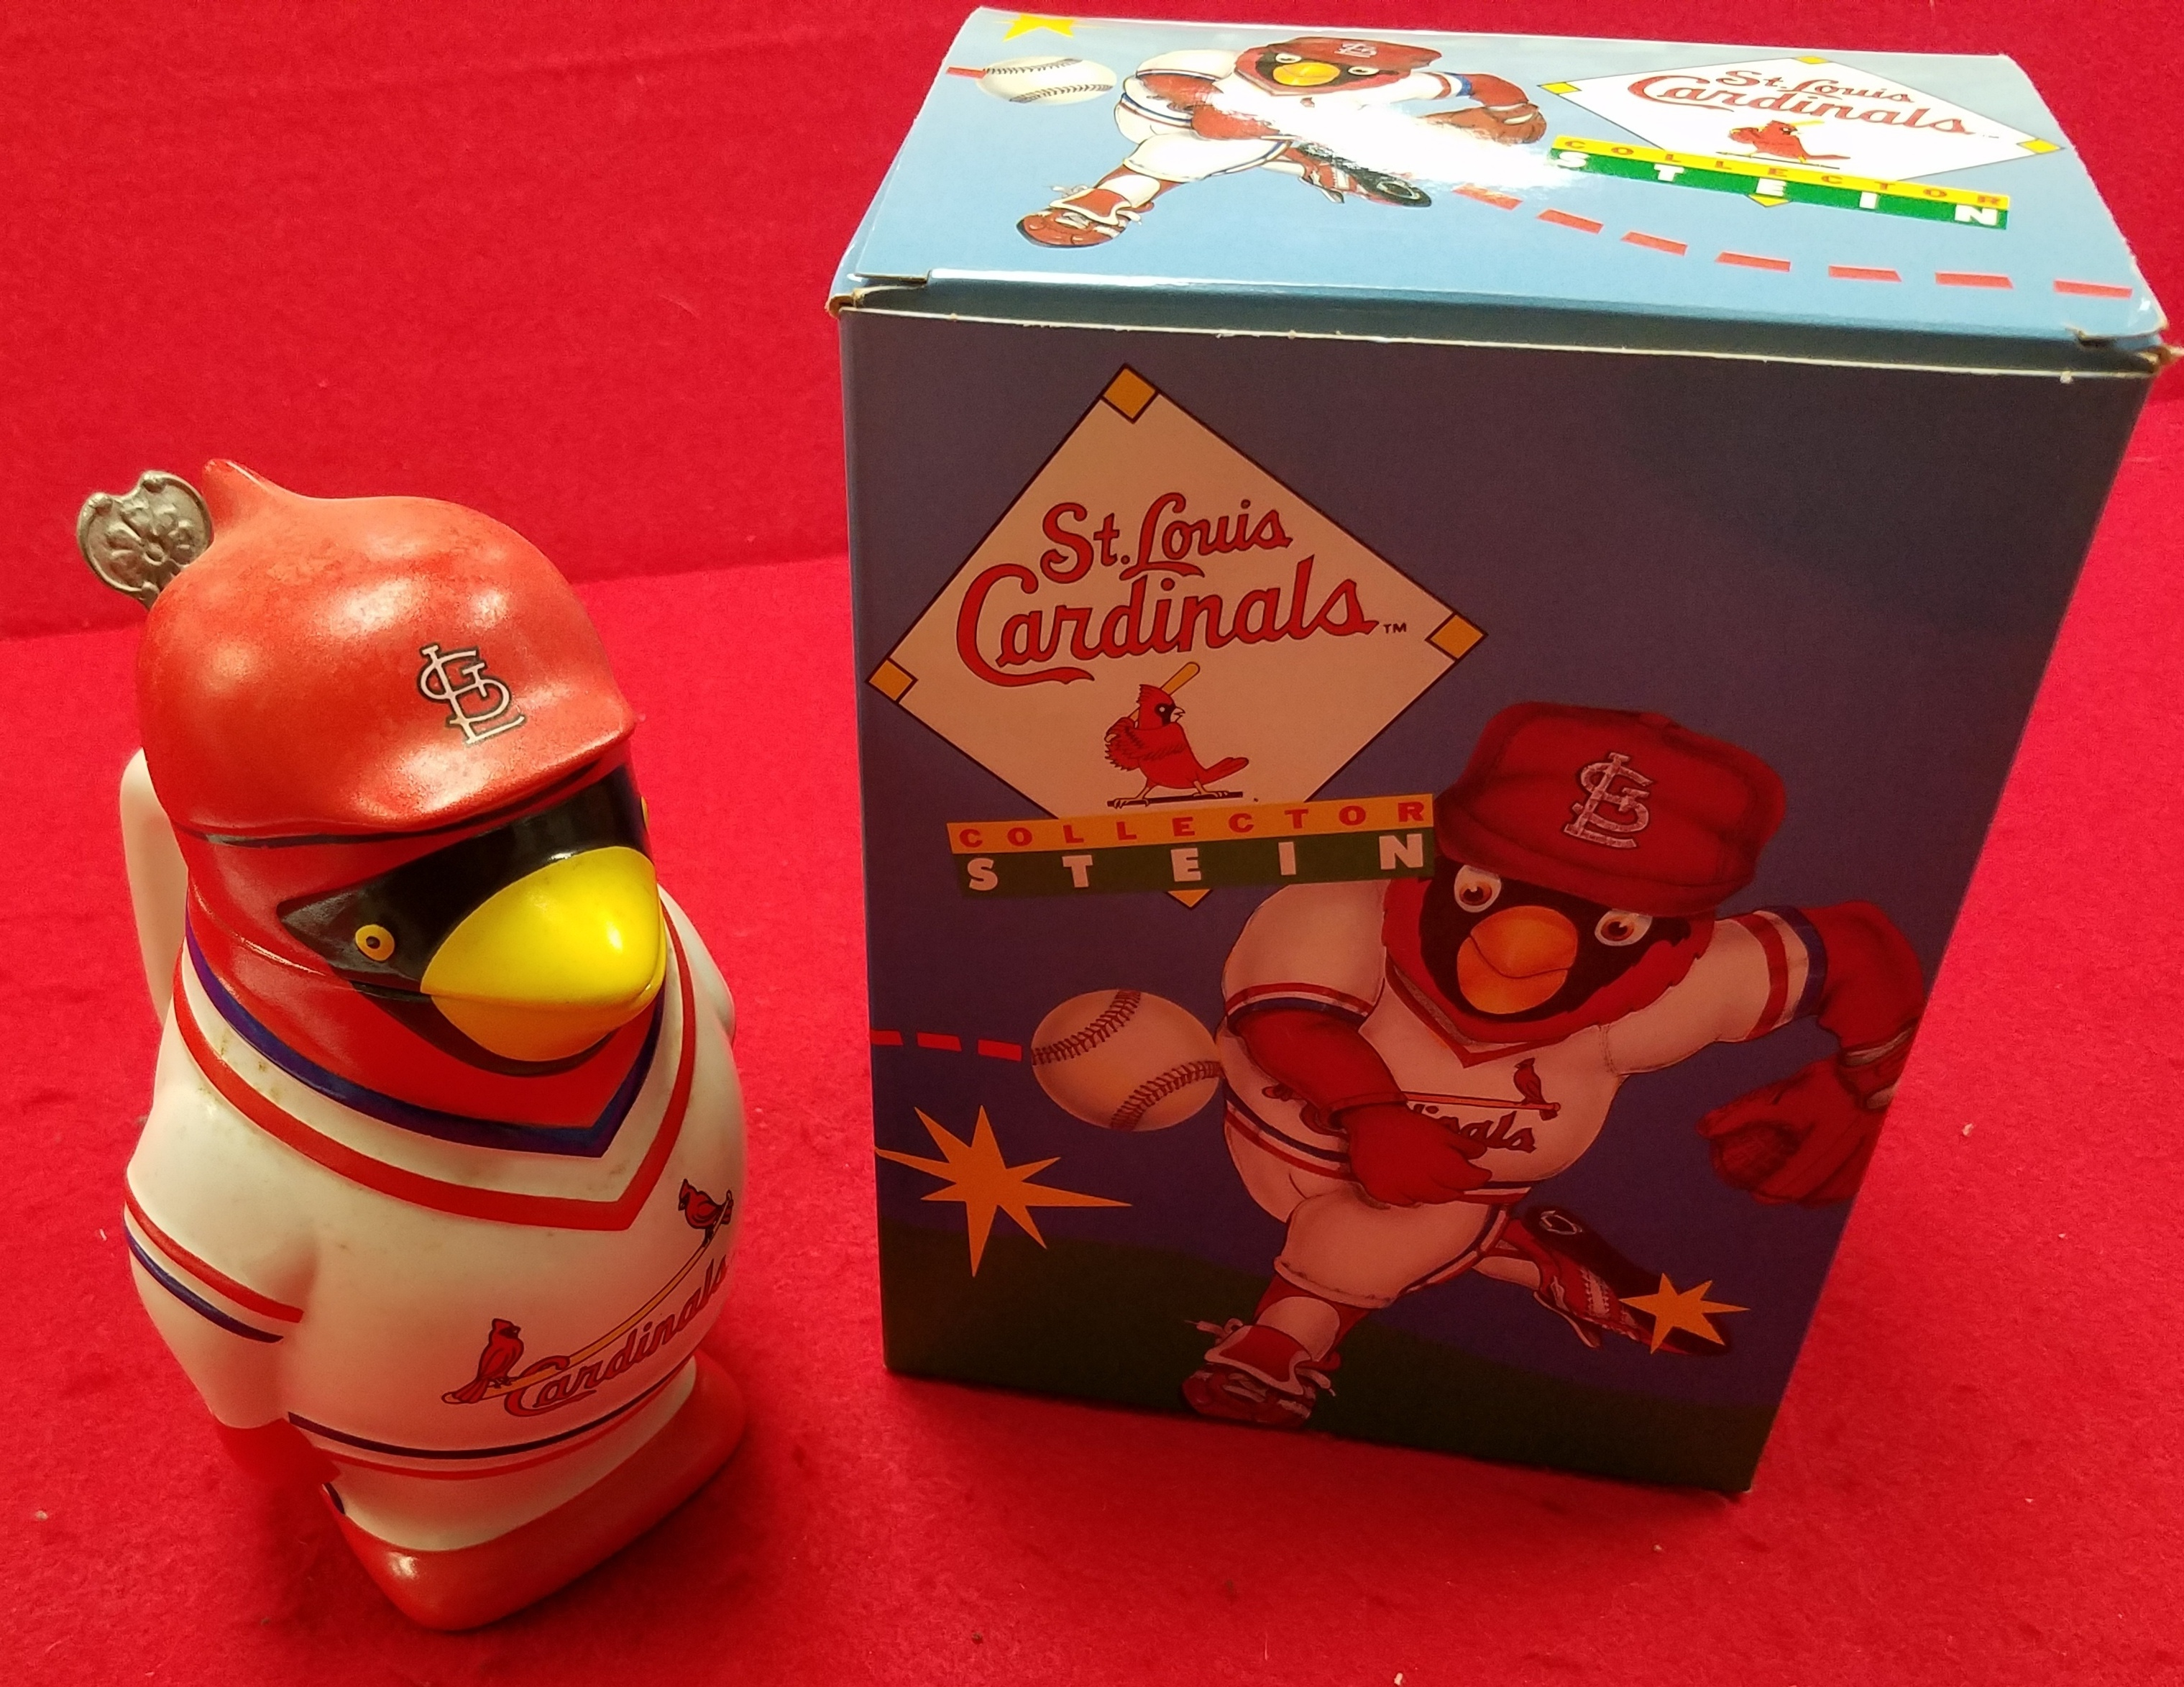 COLLECTIBLE: ST LOUIS CARDINALS STEIN